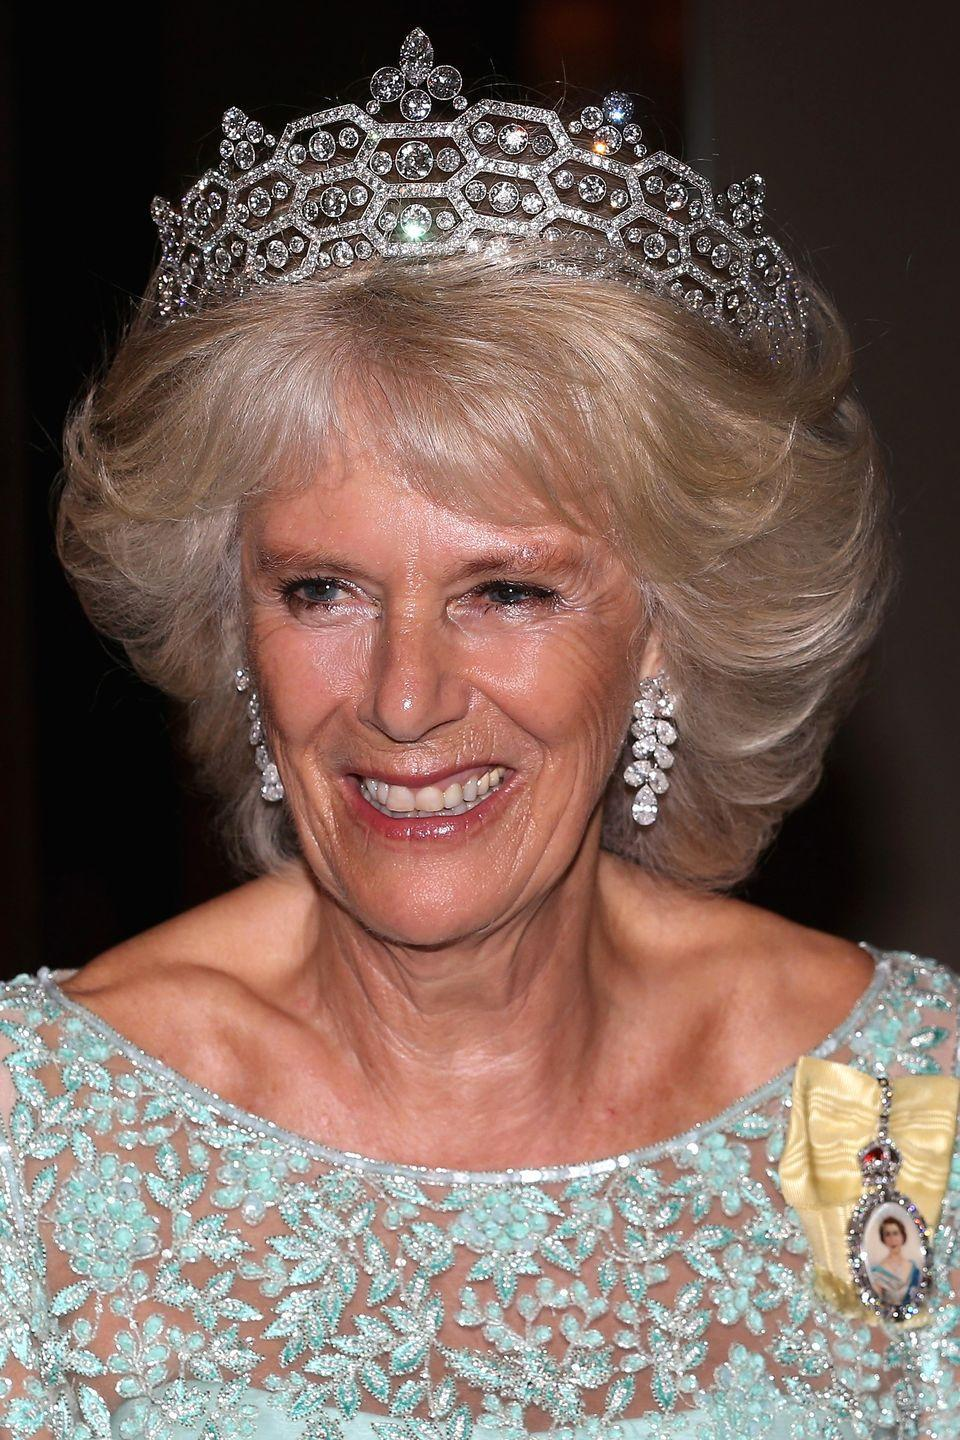 <p>The Greville tiara was made by Boucheron for Dame Margaret Helen Greville in 1920. It is also known as the Boucheron Honeycomb tiara, and is worn here by Camilla, Duchess of Cornwall. Greville left the tiara to the Queen Mother when she died in 1942, and upon the death of the Queen Mother in 2002, the Queen inherited the headpiece. It is now one of three tiaras on long-term loan to Camilla, who married Prince Charles in 2005. </p>